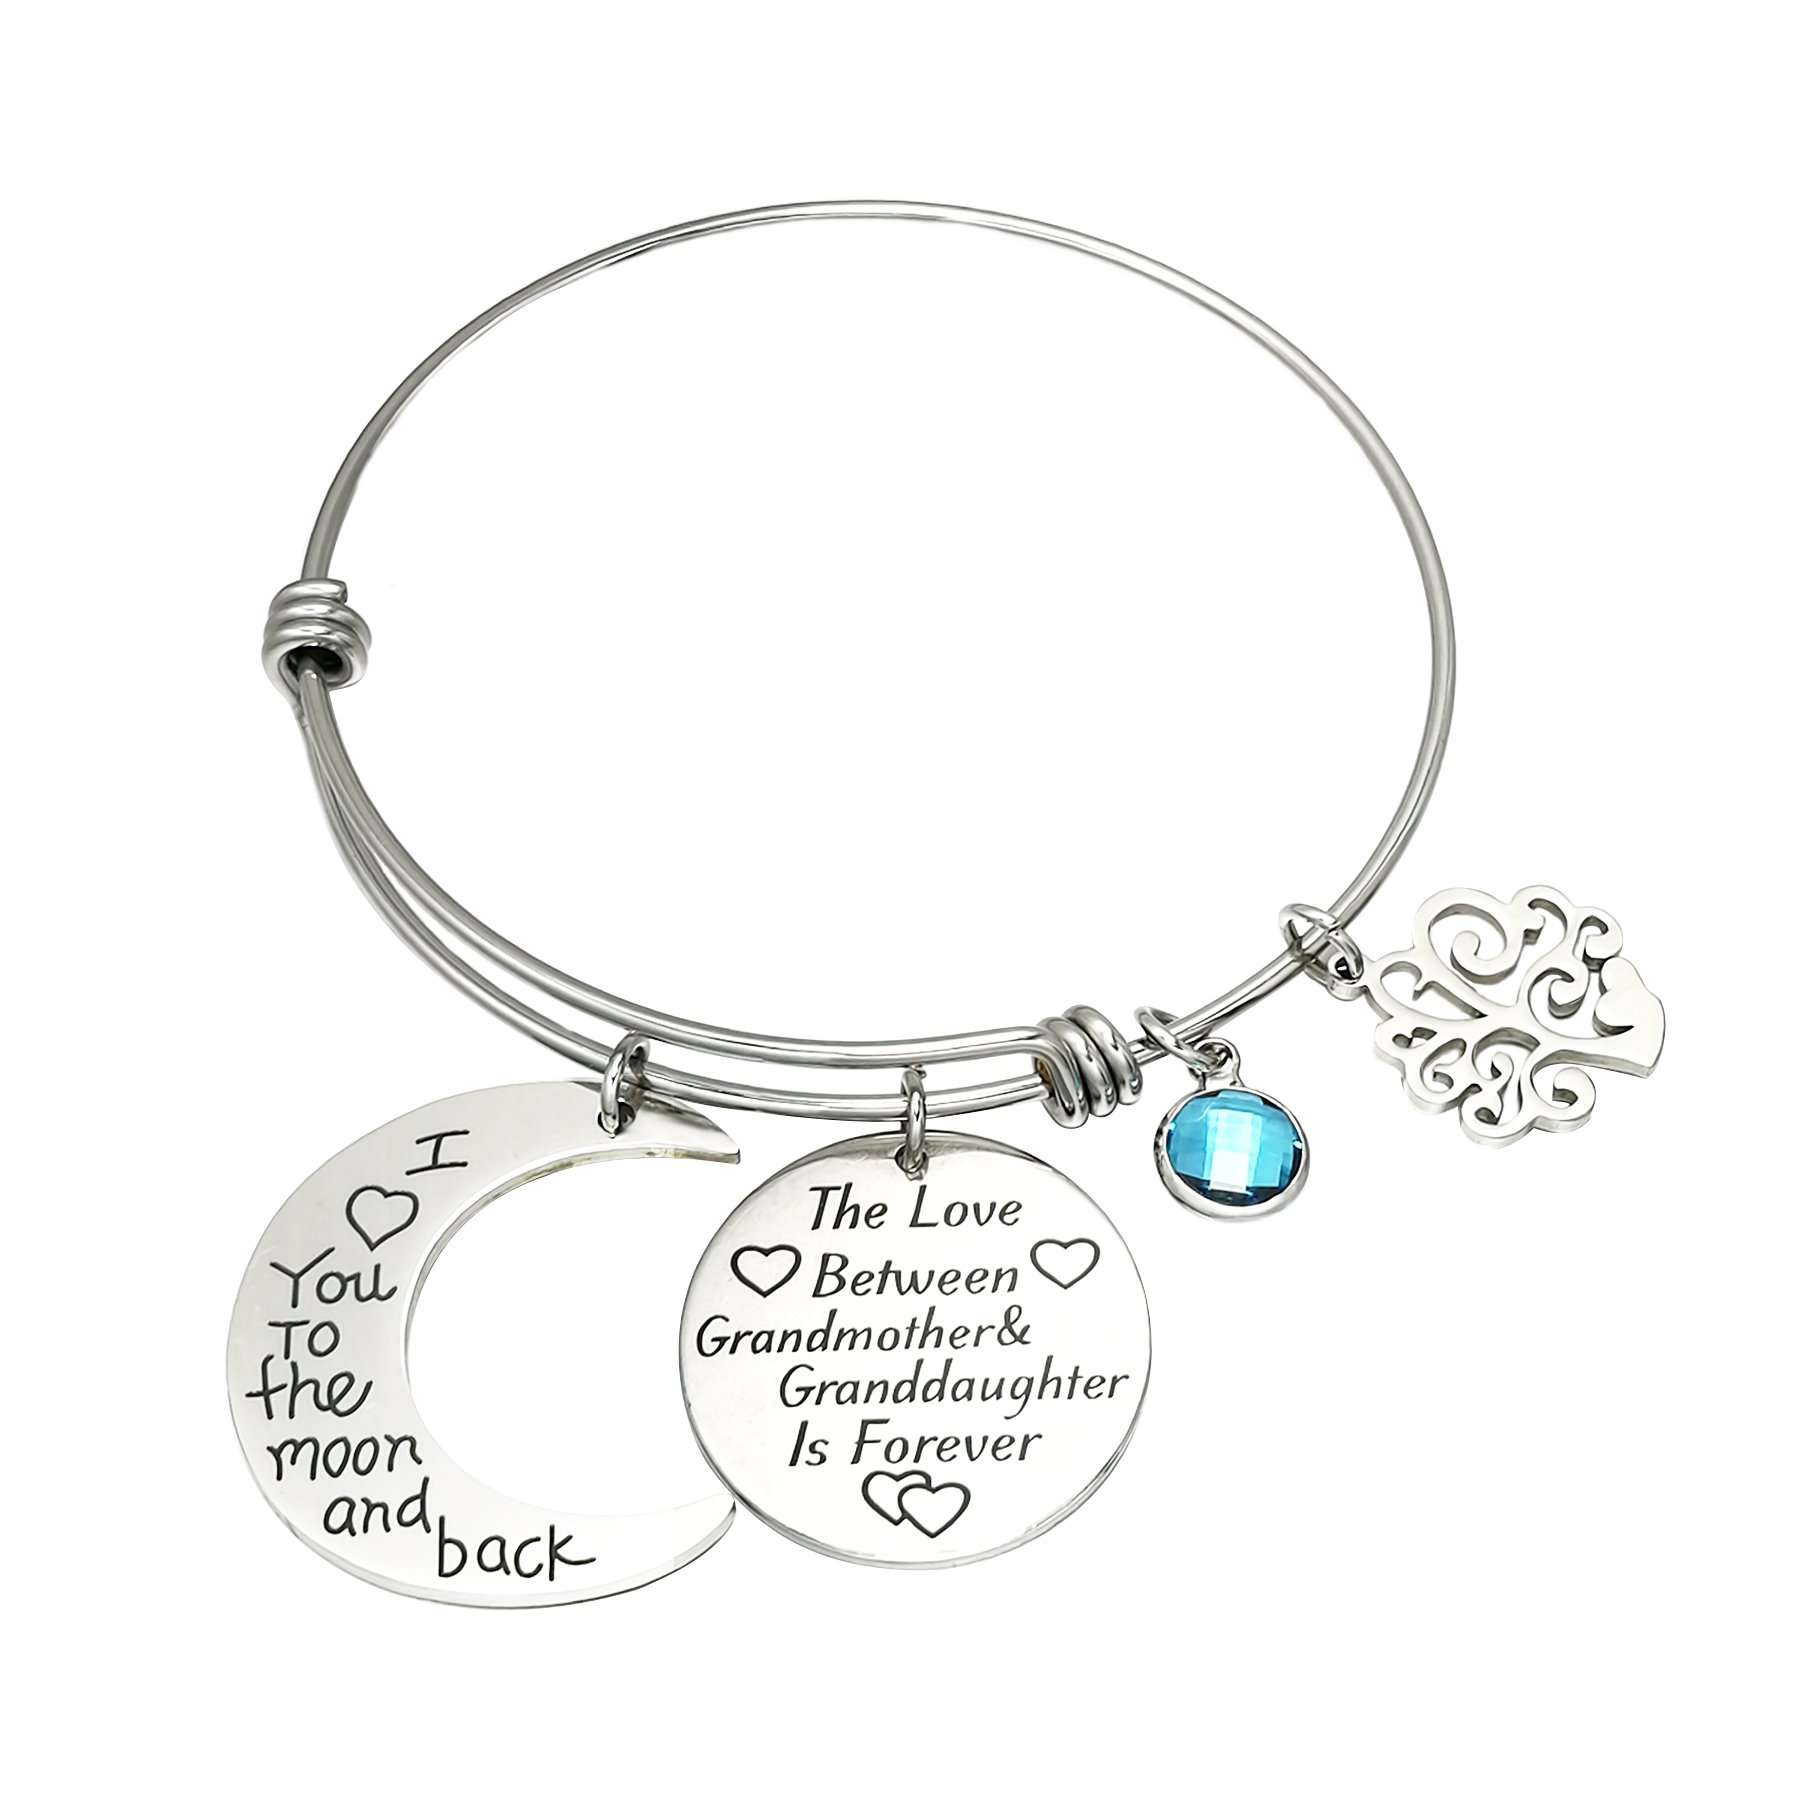 I Love You to The Moon and Back Mom Bangle Bracelets Mothers Day Gifts The Love Between Mother&Daughter is Forever Stainless Steel 4 Style (The Love Between Grandmother&Granddaughter is Forever)